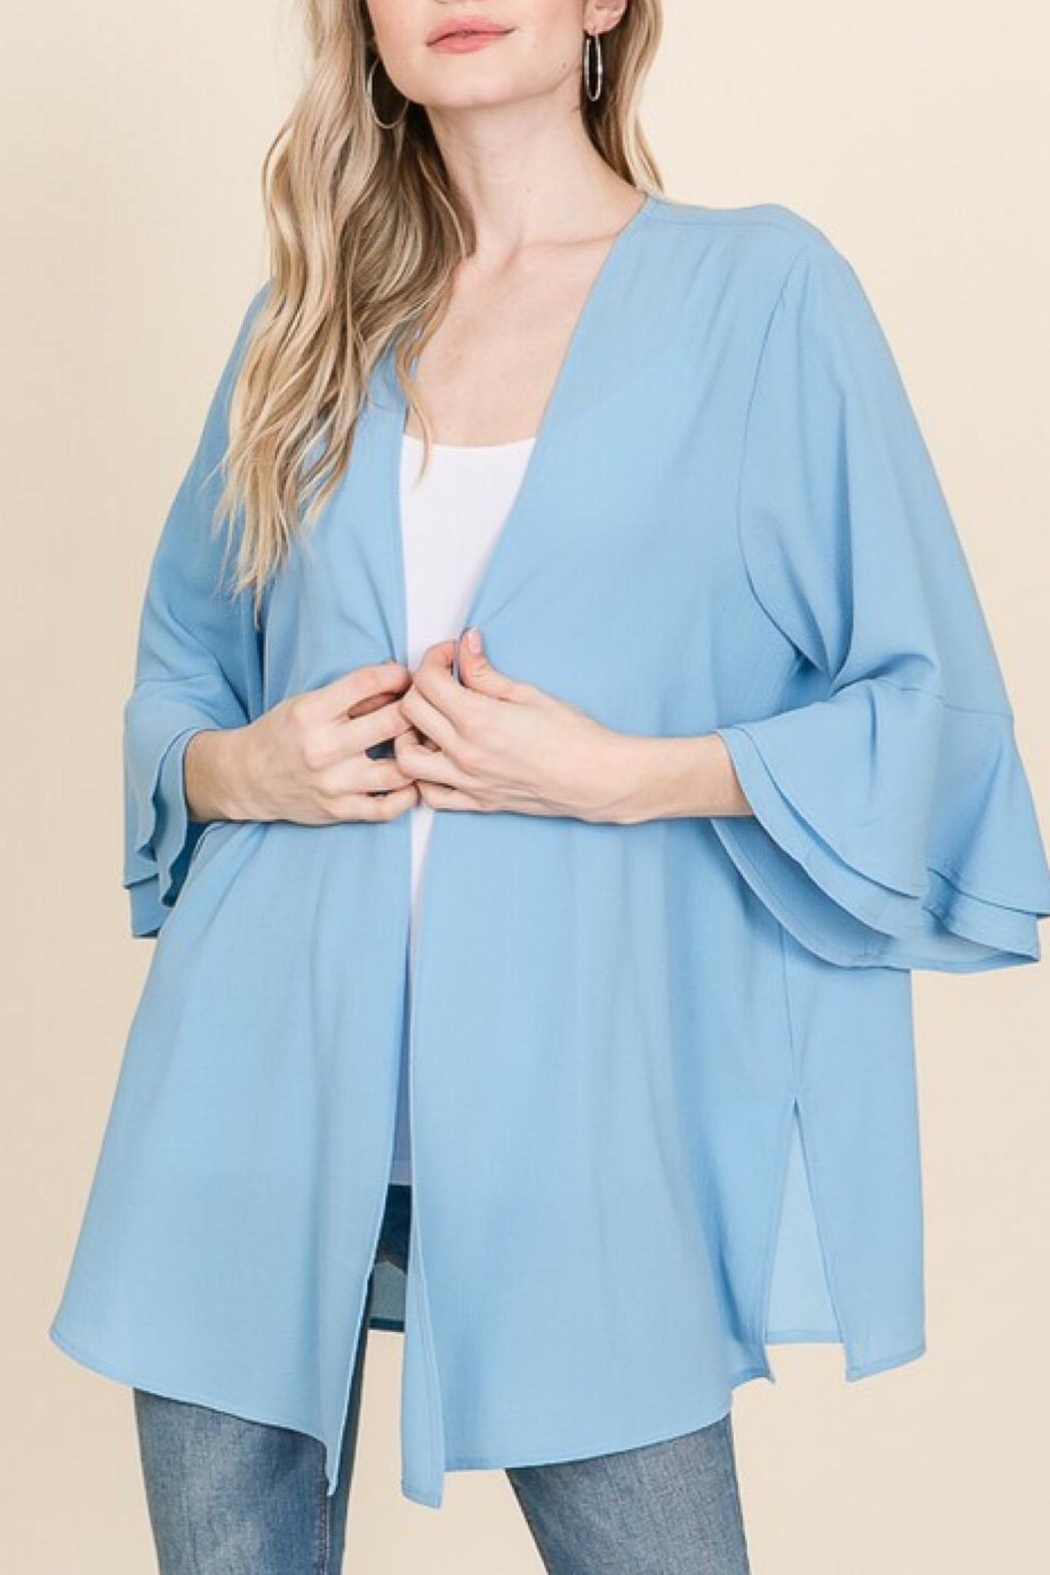 Racheal Misty Blue Cardigan - Back Cropped Image